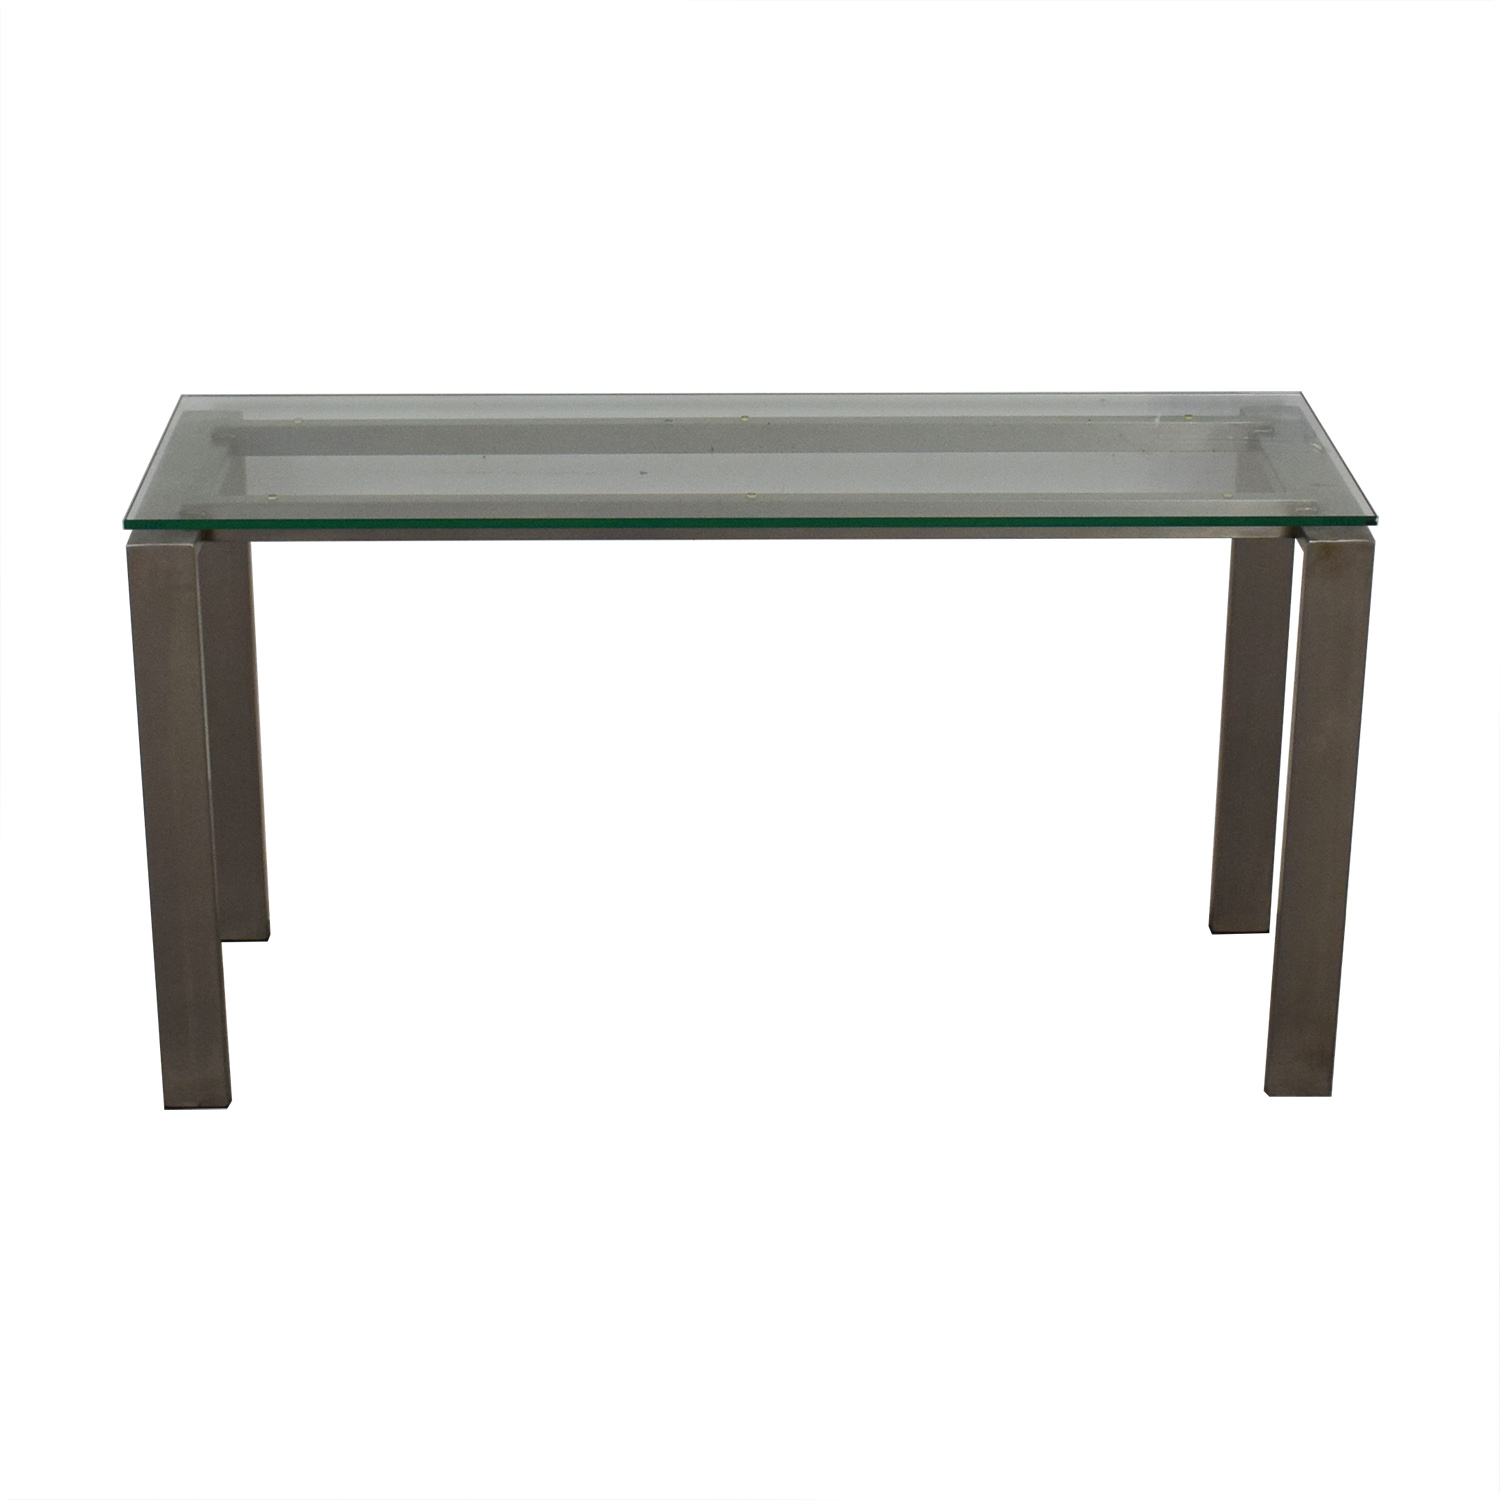 Room & Board Room & Board Rand Glass and Stainless Steel Table discount